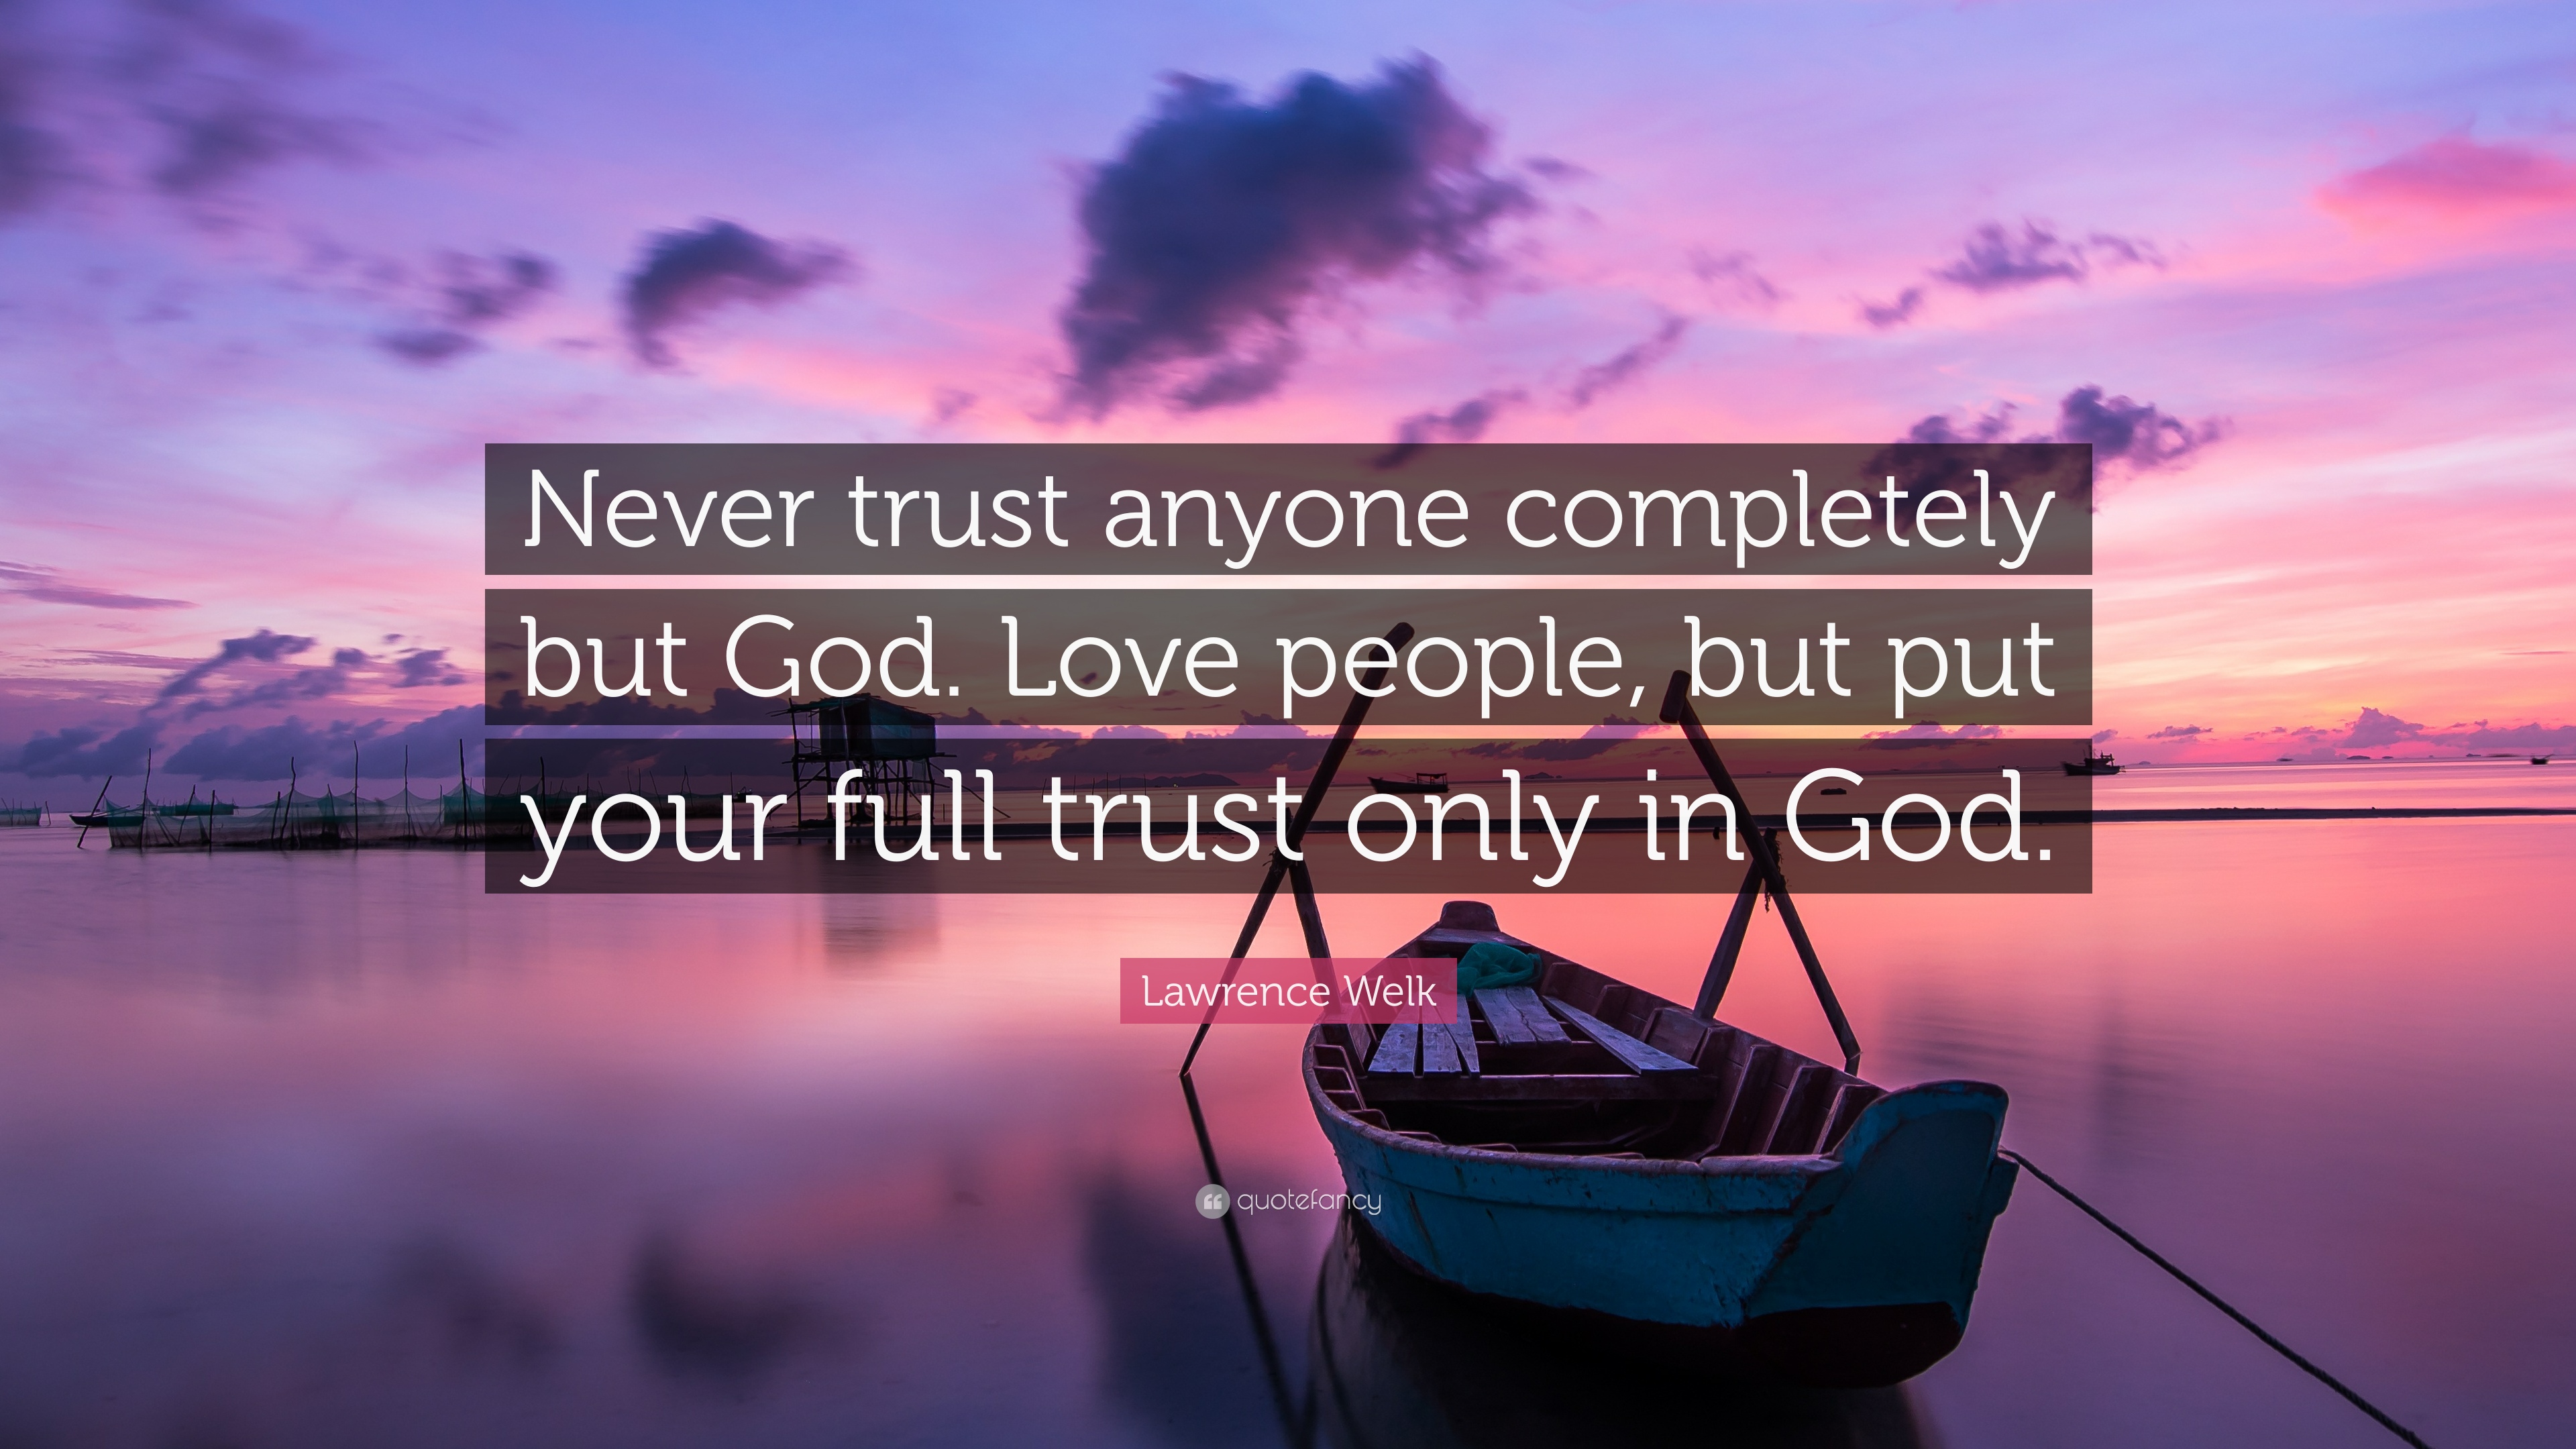 Lawrence Welk Quote: Never trust anyone completely but